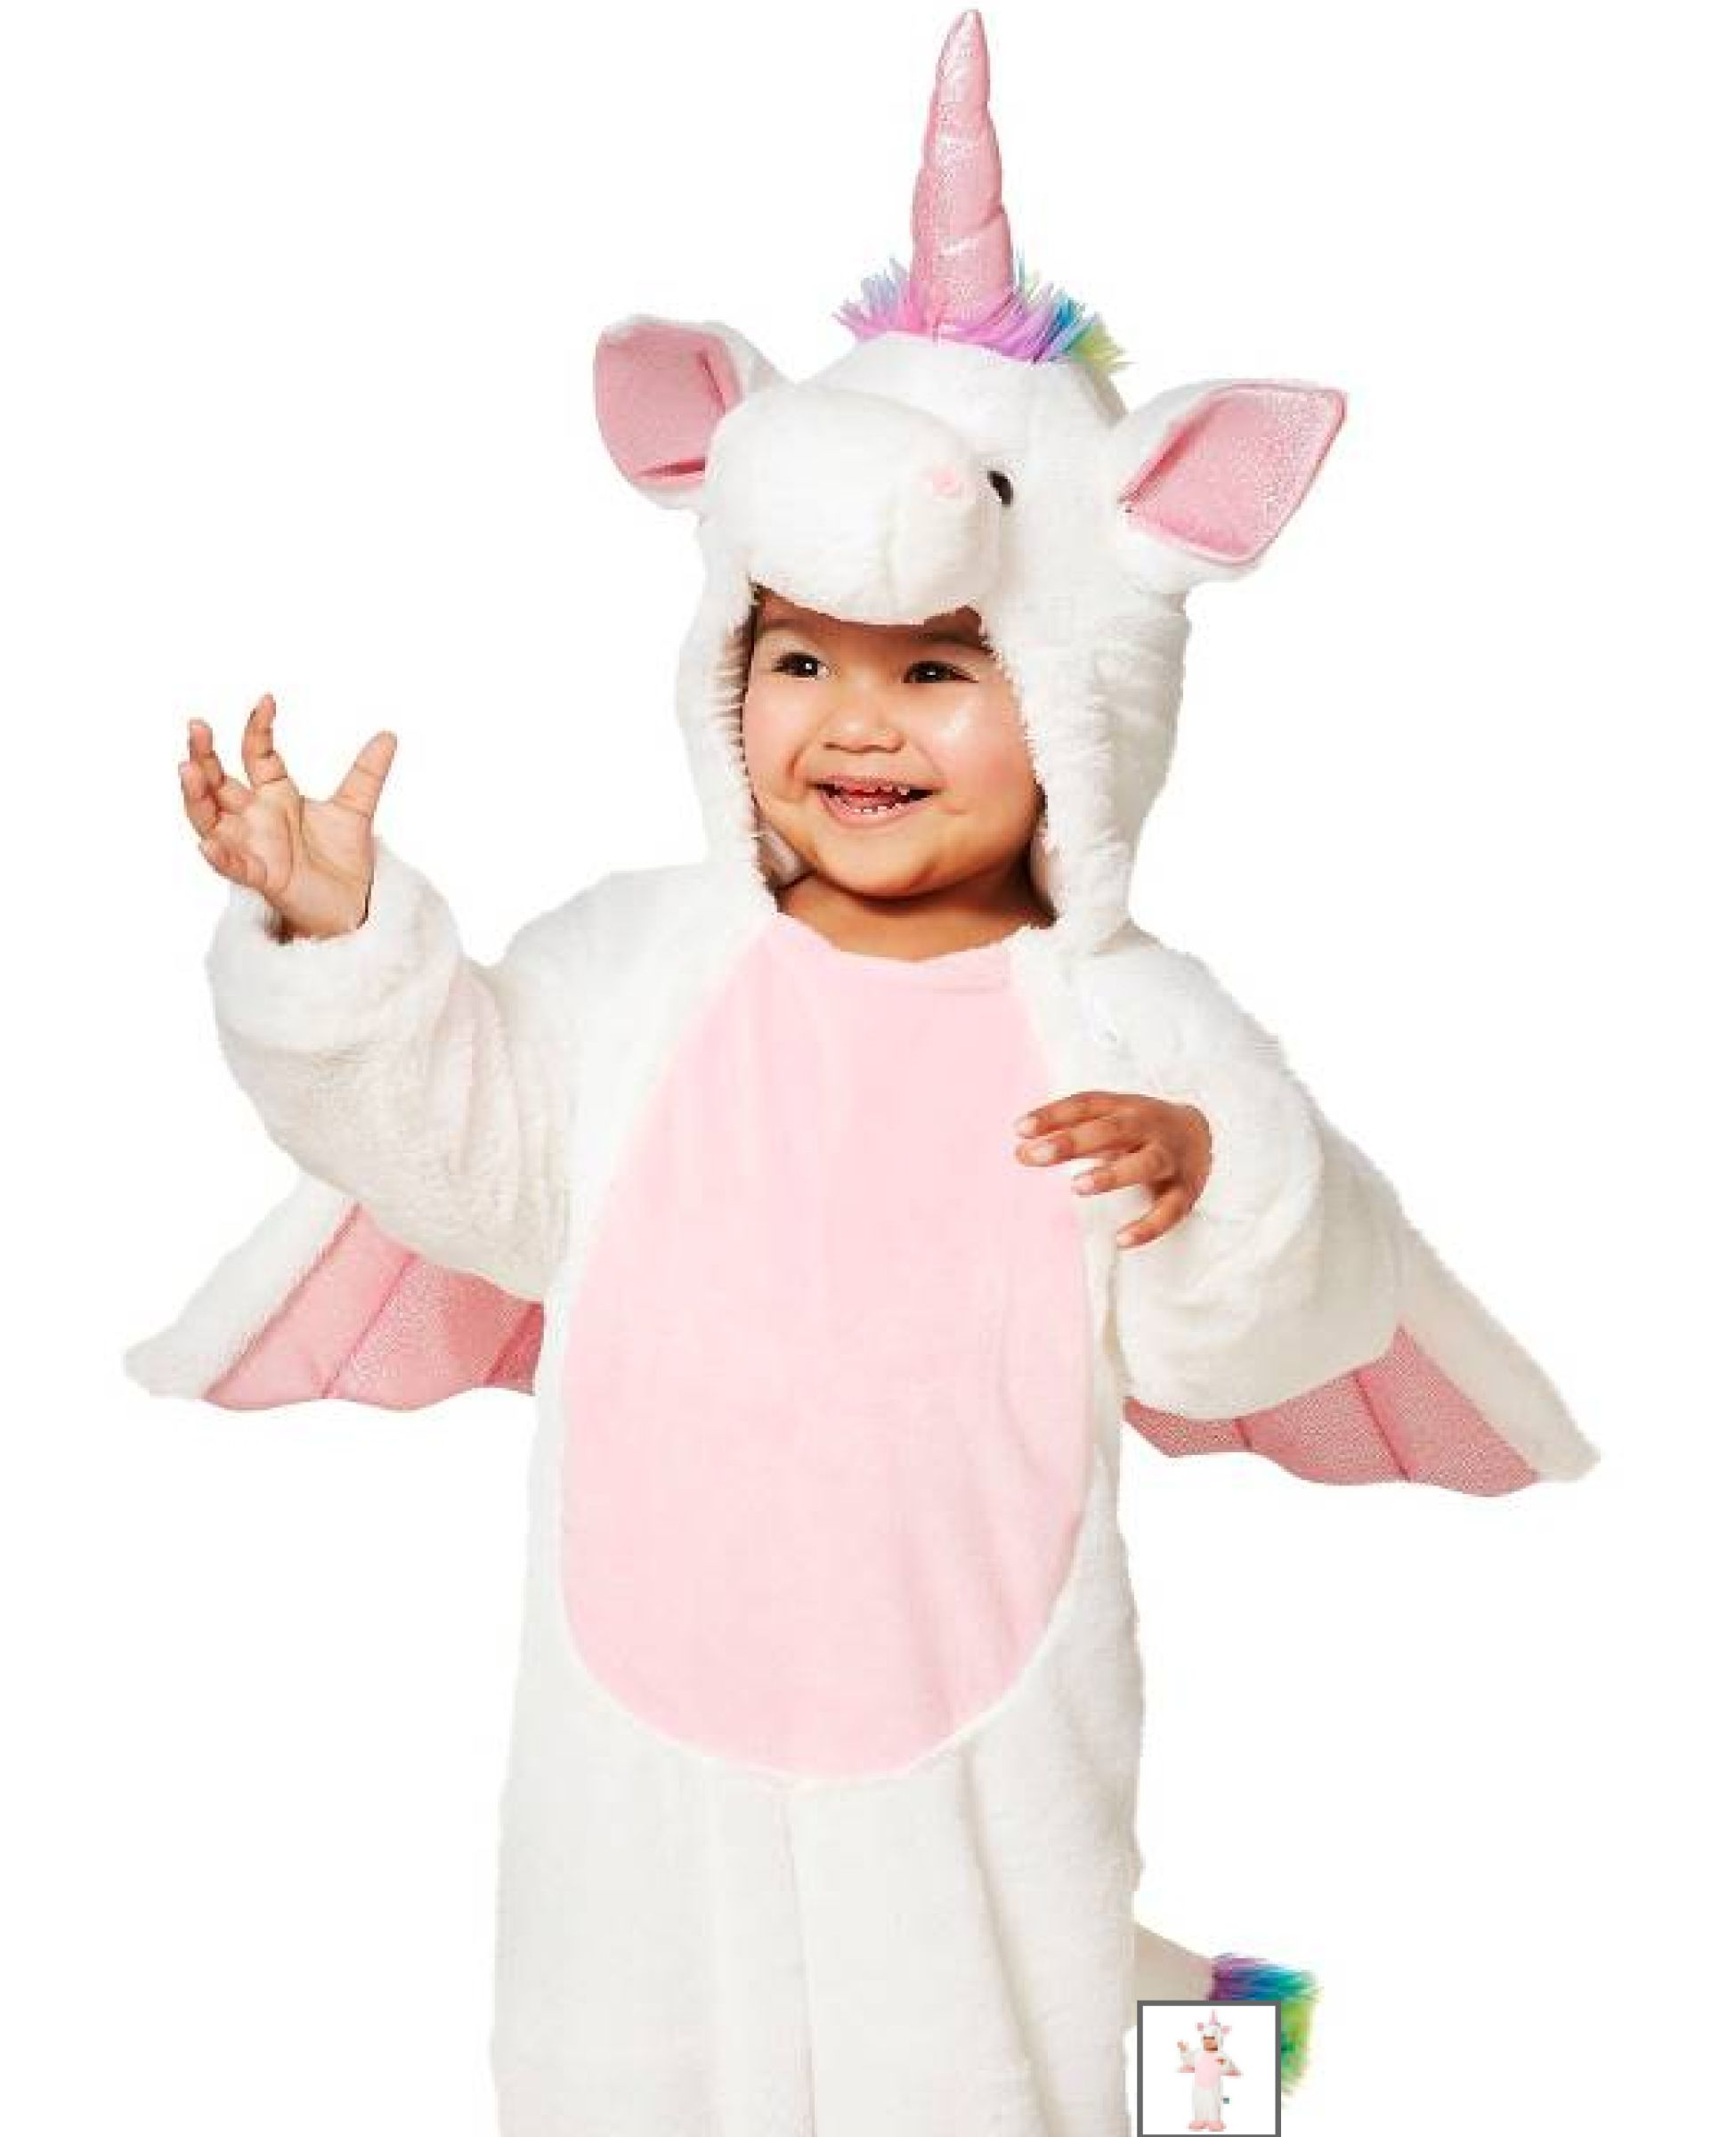 e66bed7ccbb0 My baby grand model - Target Unicorn costume coming in the fall of 2016!  She's such a doll.